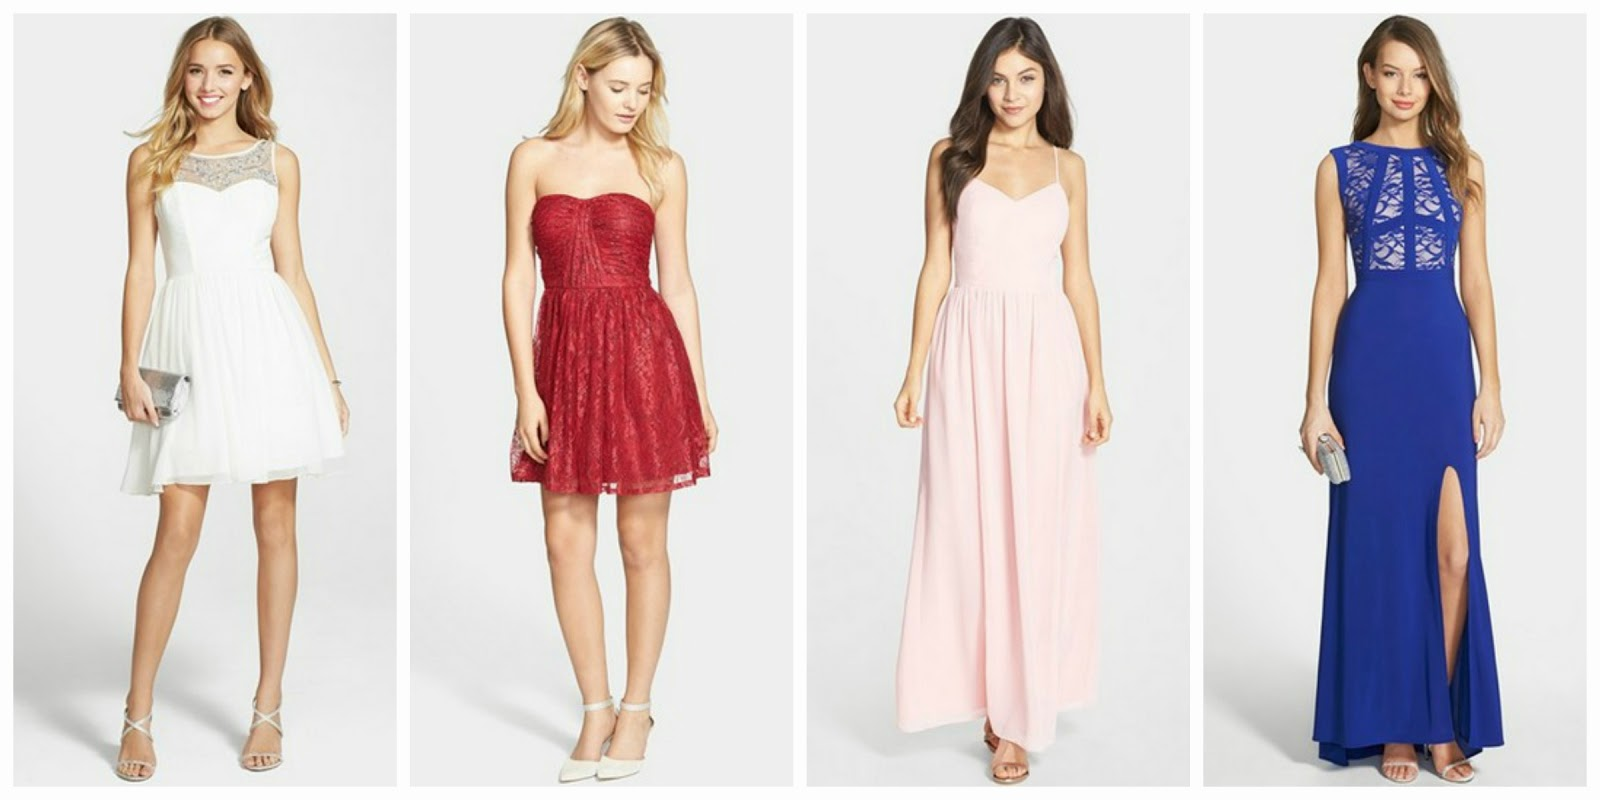 March Prom Dresses